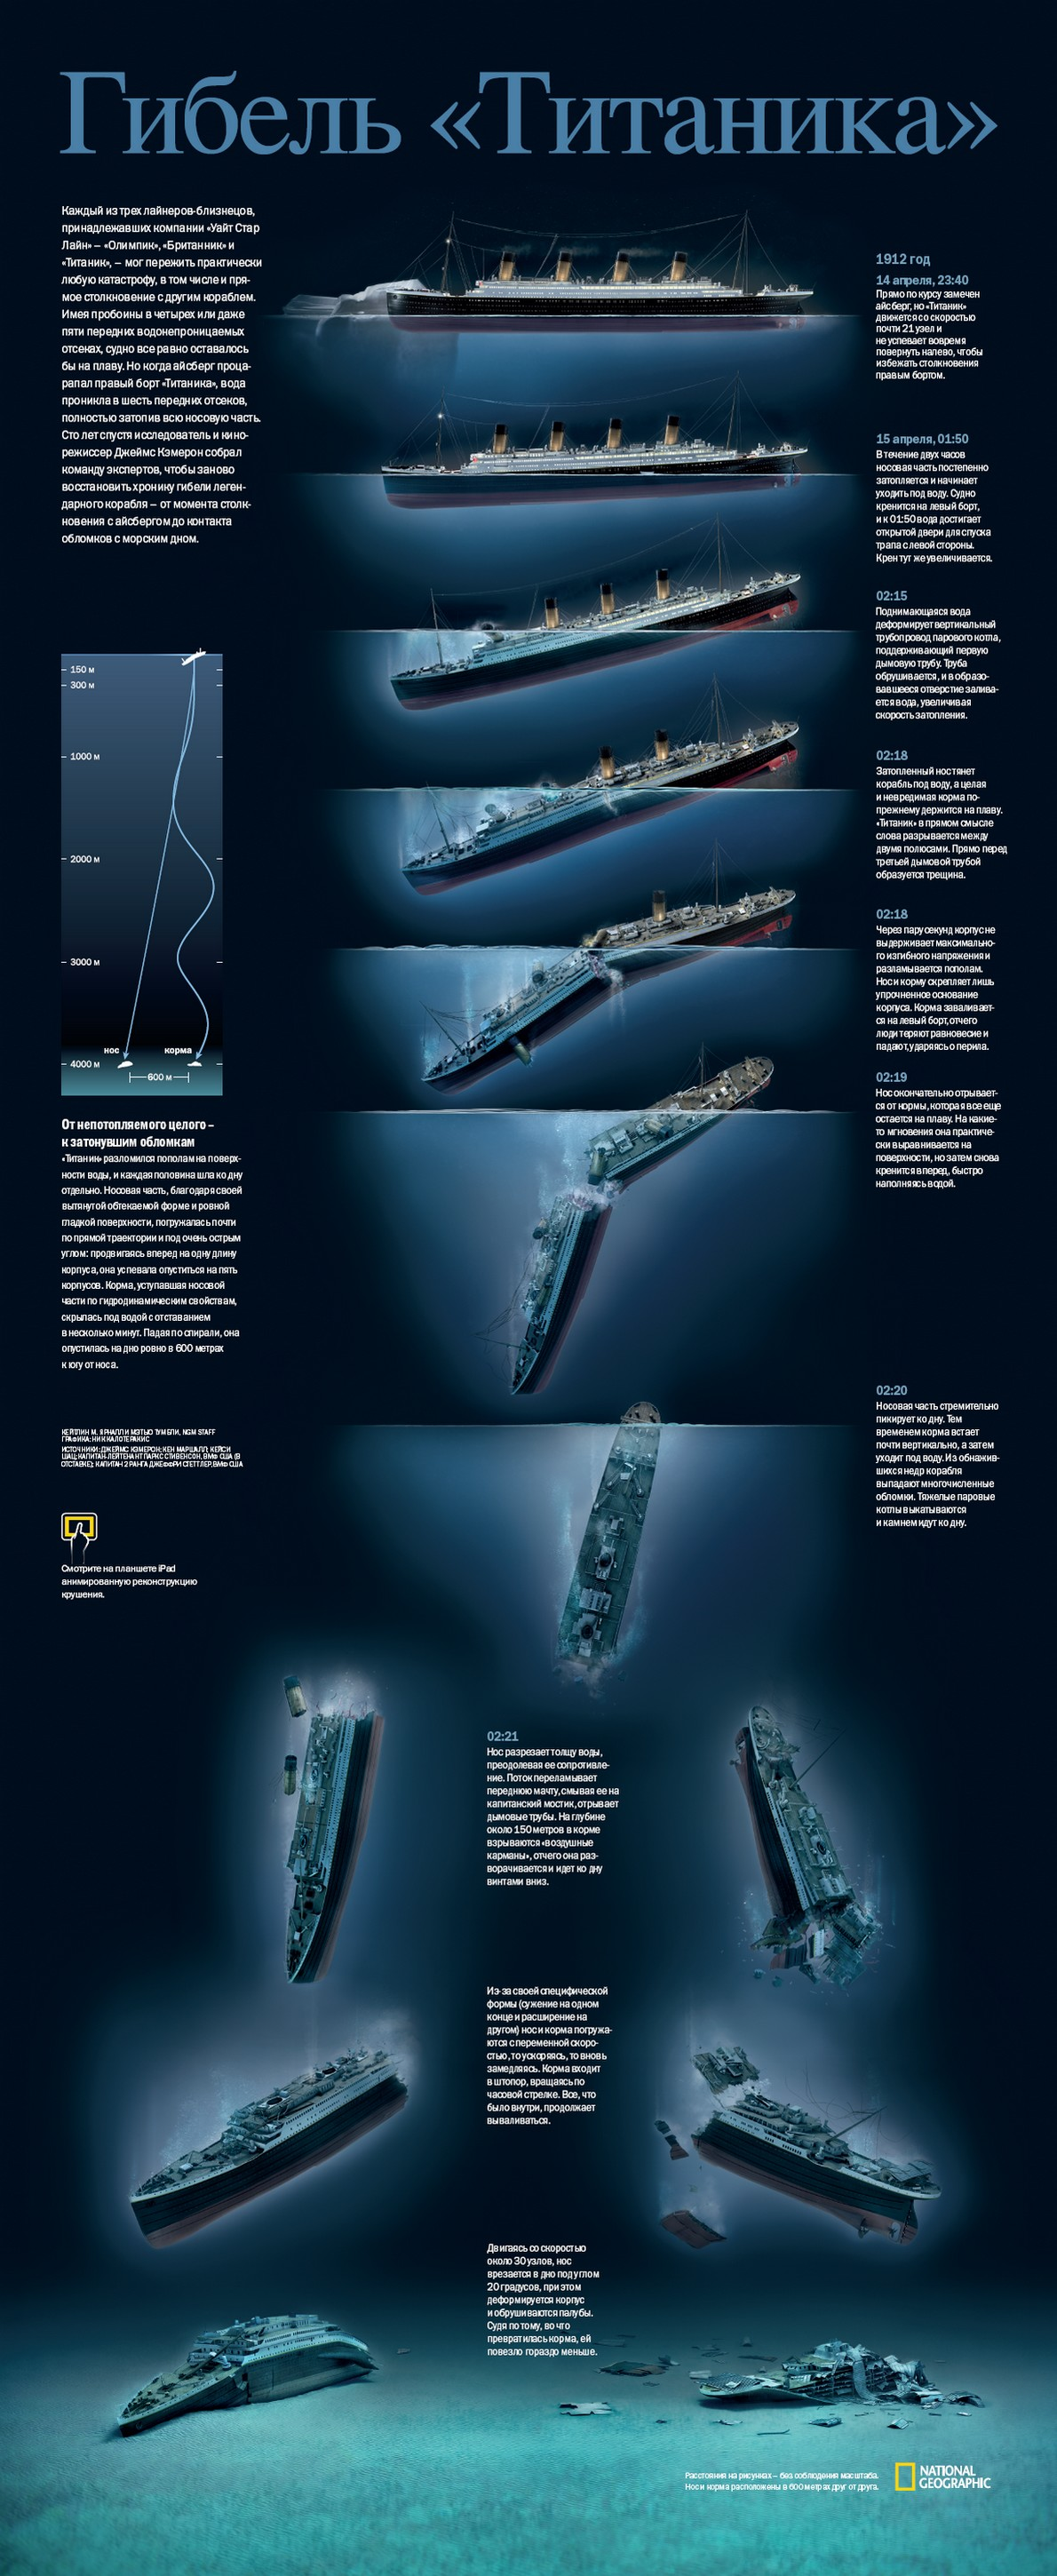 an in depth look at the tragedy ship the titanic Unlike most editing & proofreading services, we edit for everything: grammar, spelling, punctuation, idea flow, sentence structure, & more get started now.